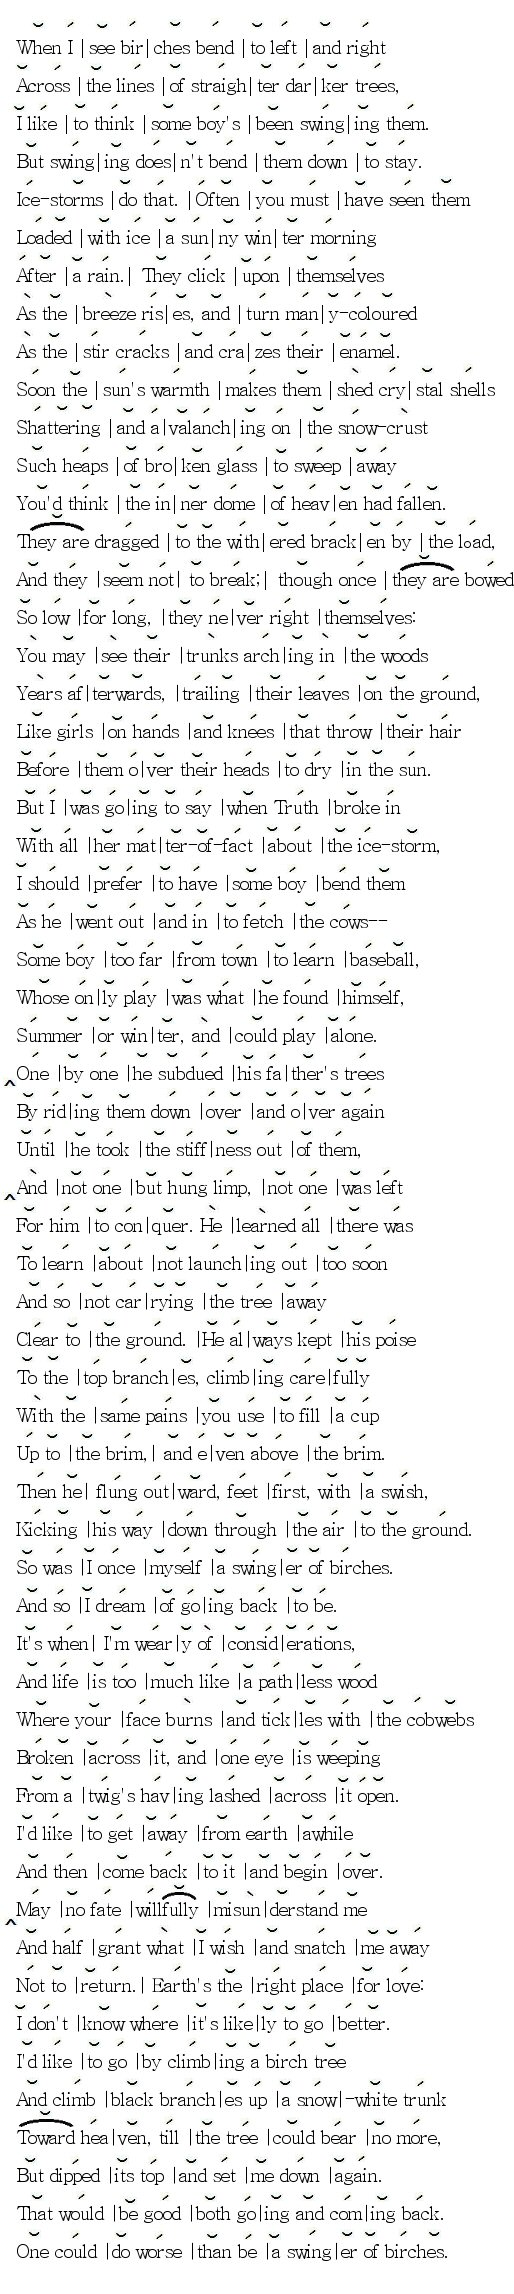 Robert Frost - Scansion of Birches